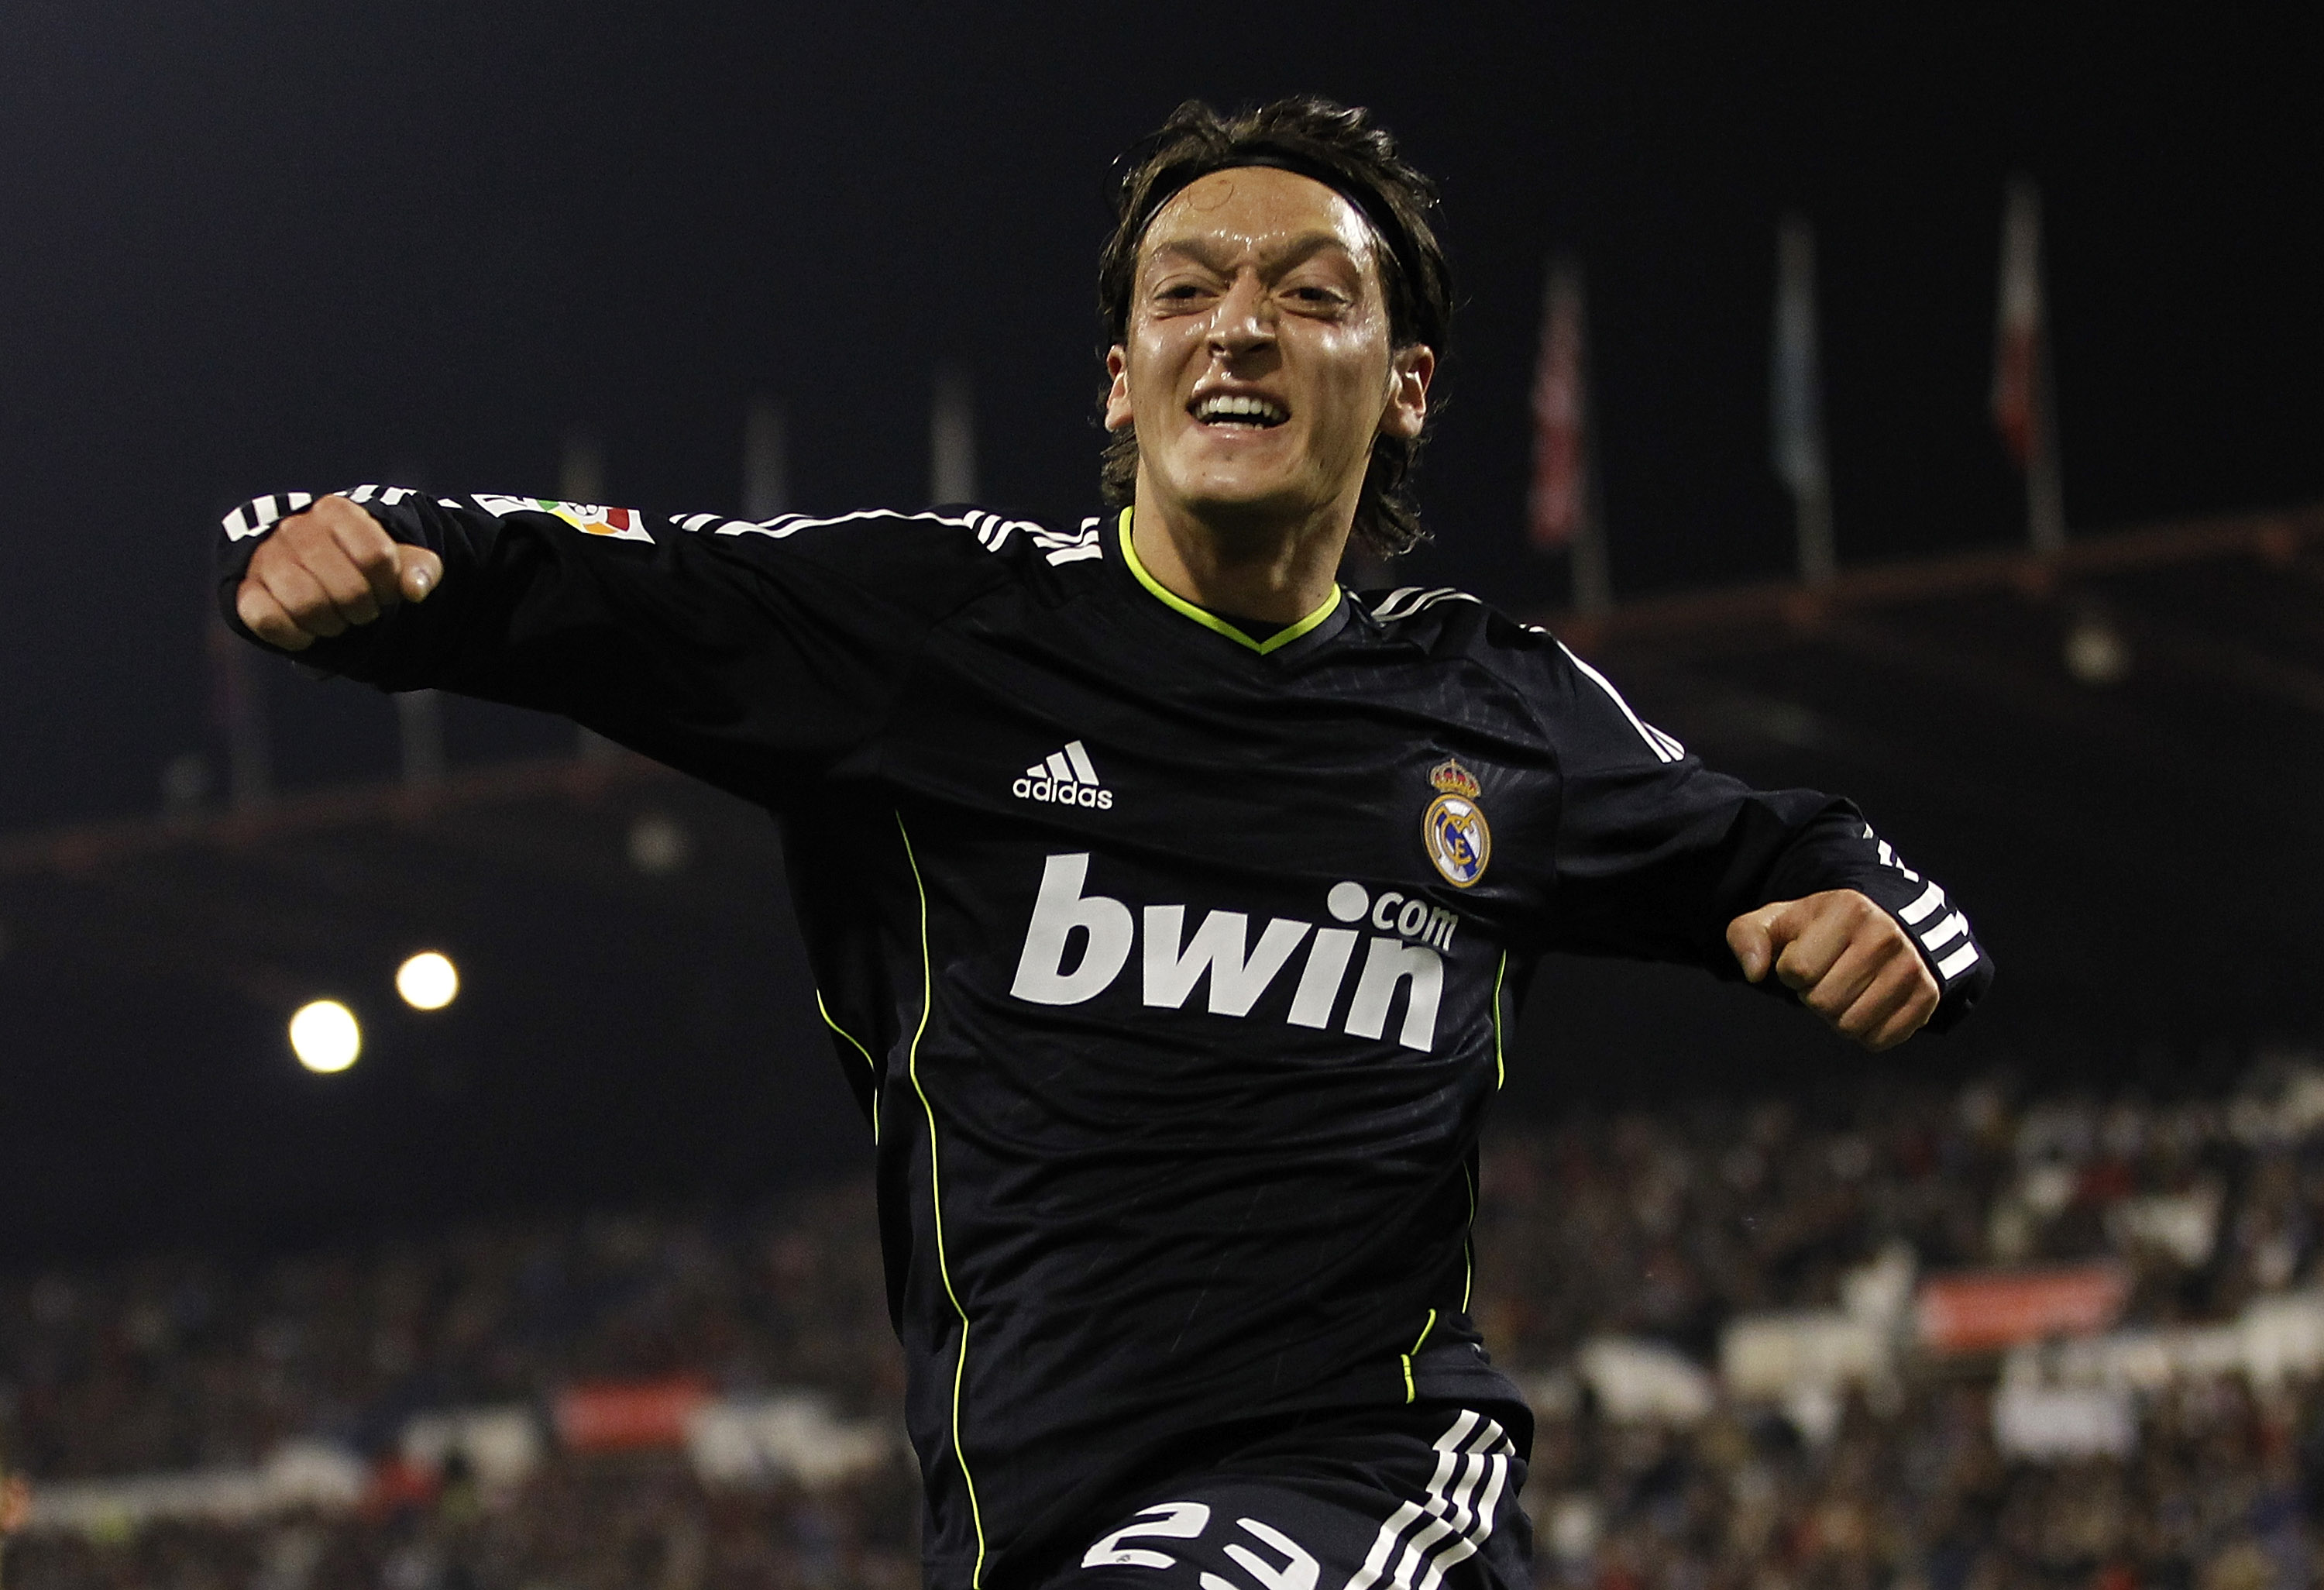 ZARAGOZA, SPAIN - DECEMBER 12: Mezut Ozil of Real Madrid celebrates after scoring Real's opening goal during the La Liga match between Real Zaragoza and Real Madrid at La Romareda stadium on December 12, 2010 in Zaragoza, Spain. (Photo by Angel Martinez/G